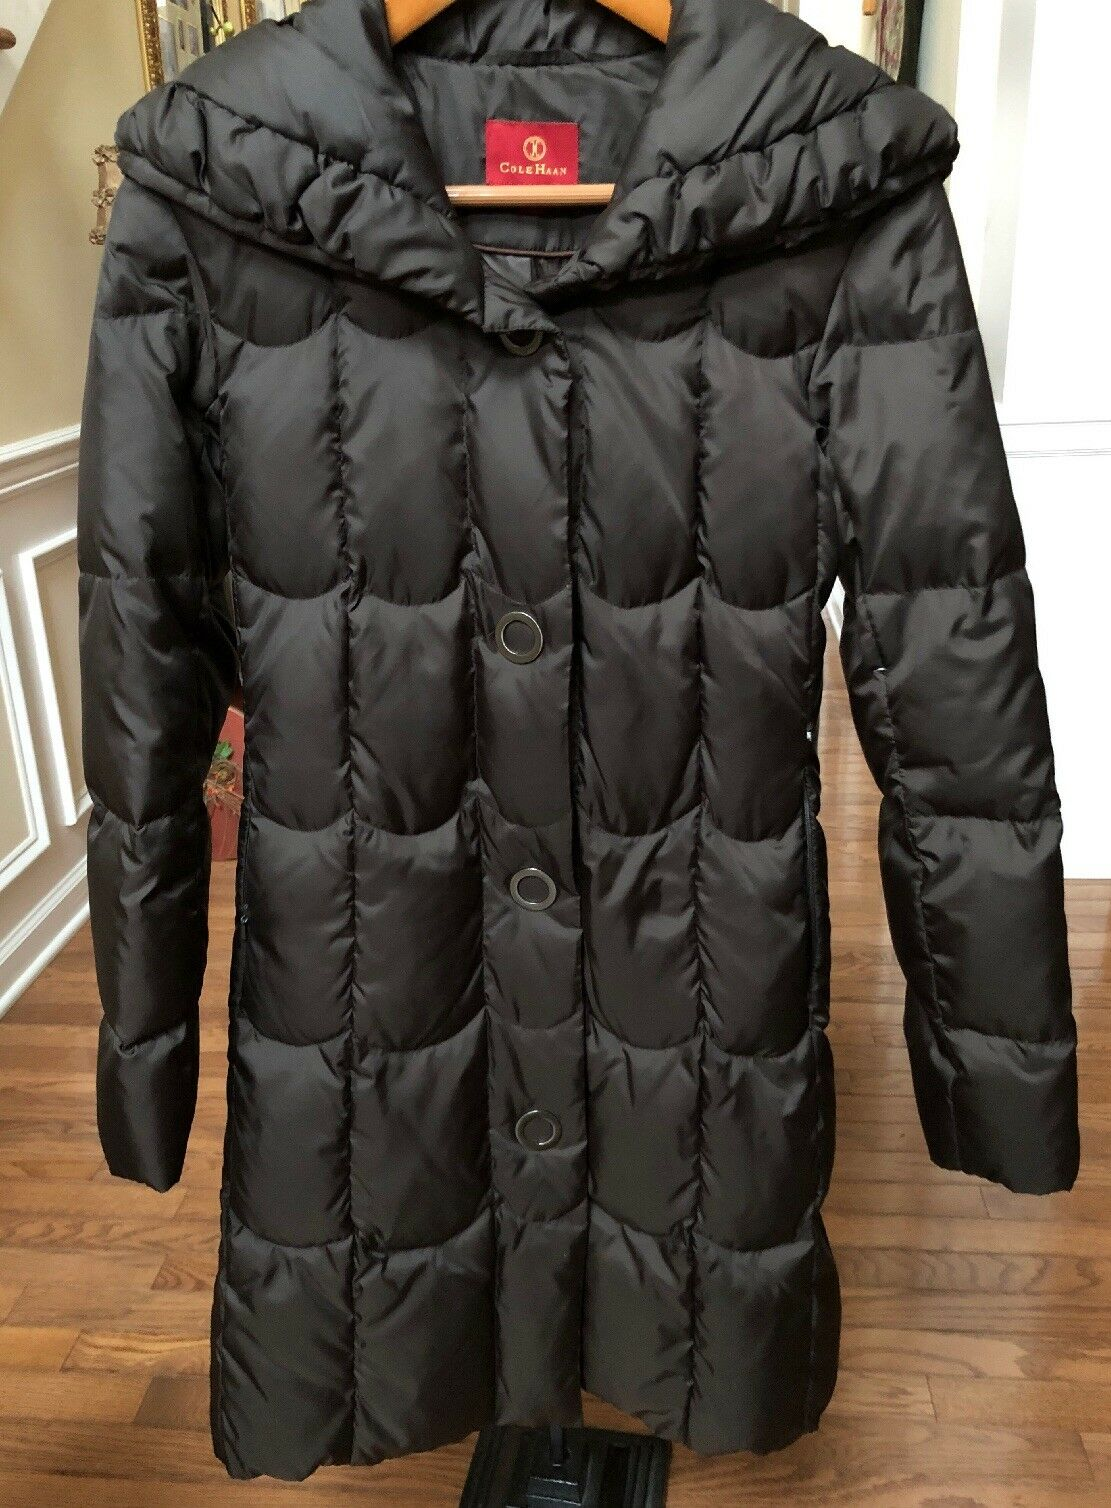 WOMEN'S COLE HAAN DOWN DOWN DOWN FILLED WINTER COAT KNEE LENGTH. Preowned SIZE XS 434955